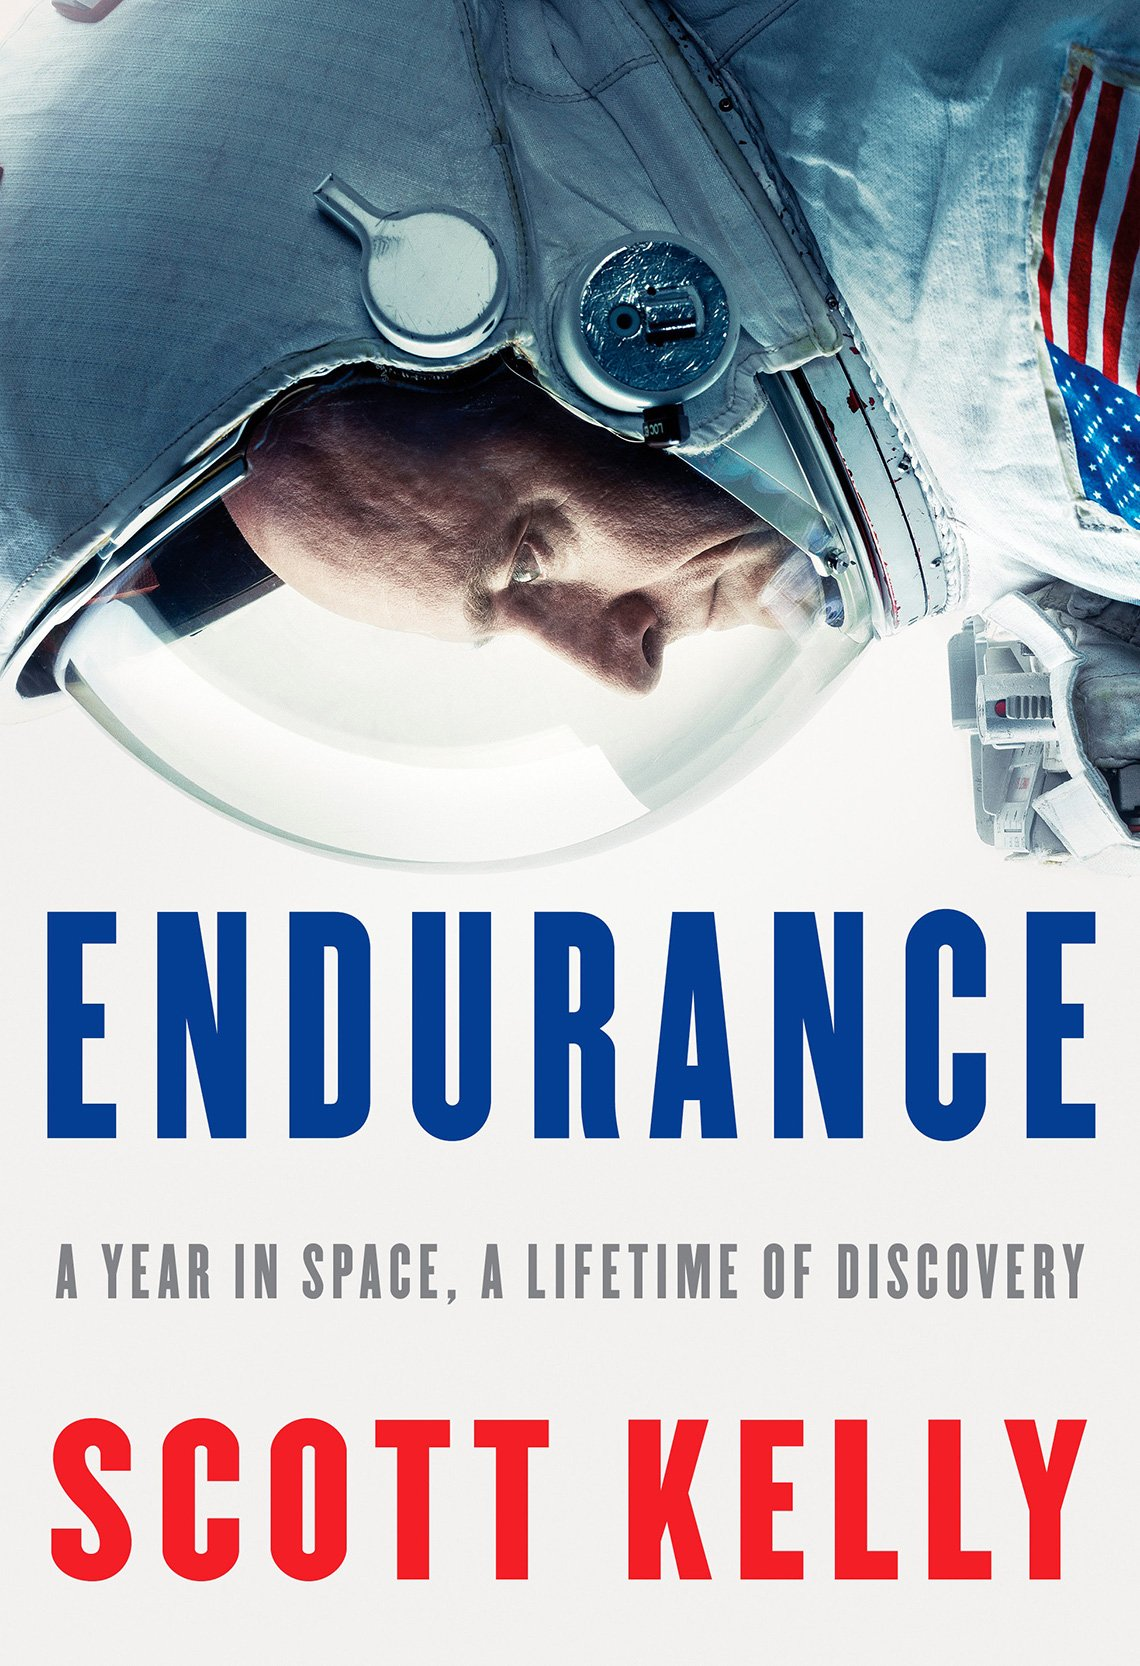 'Endurance: A Year in Space, A Lifetime of Discovery' by Scott Kelly